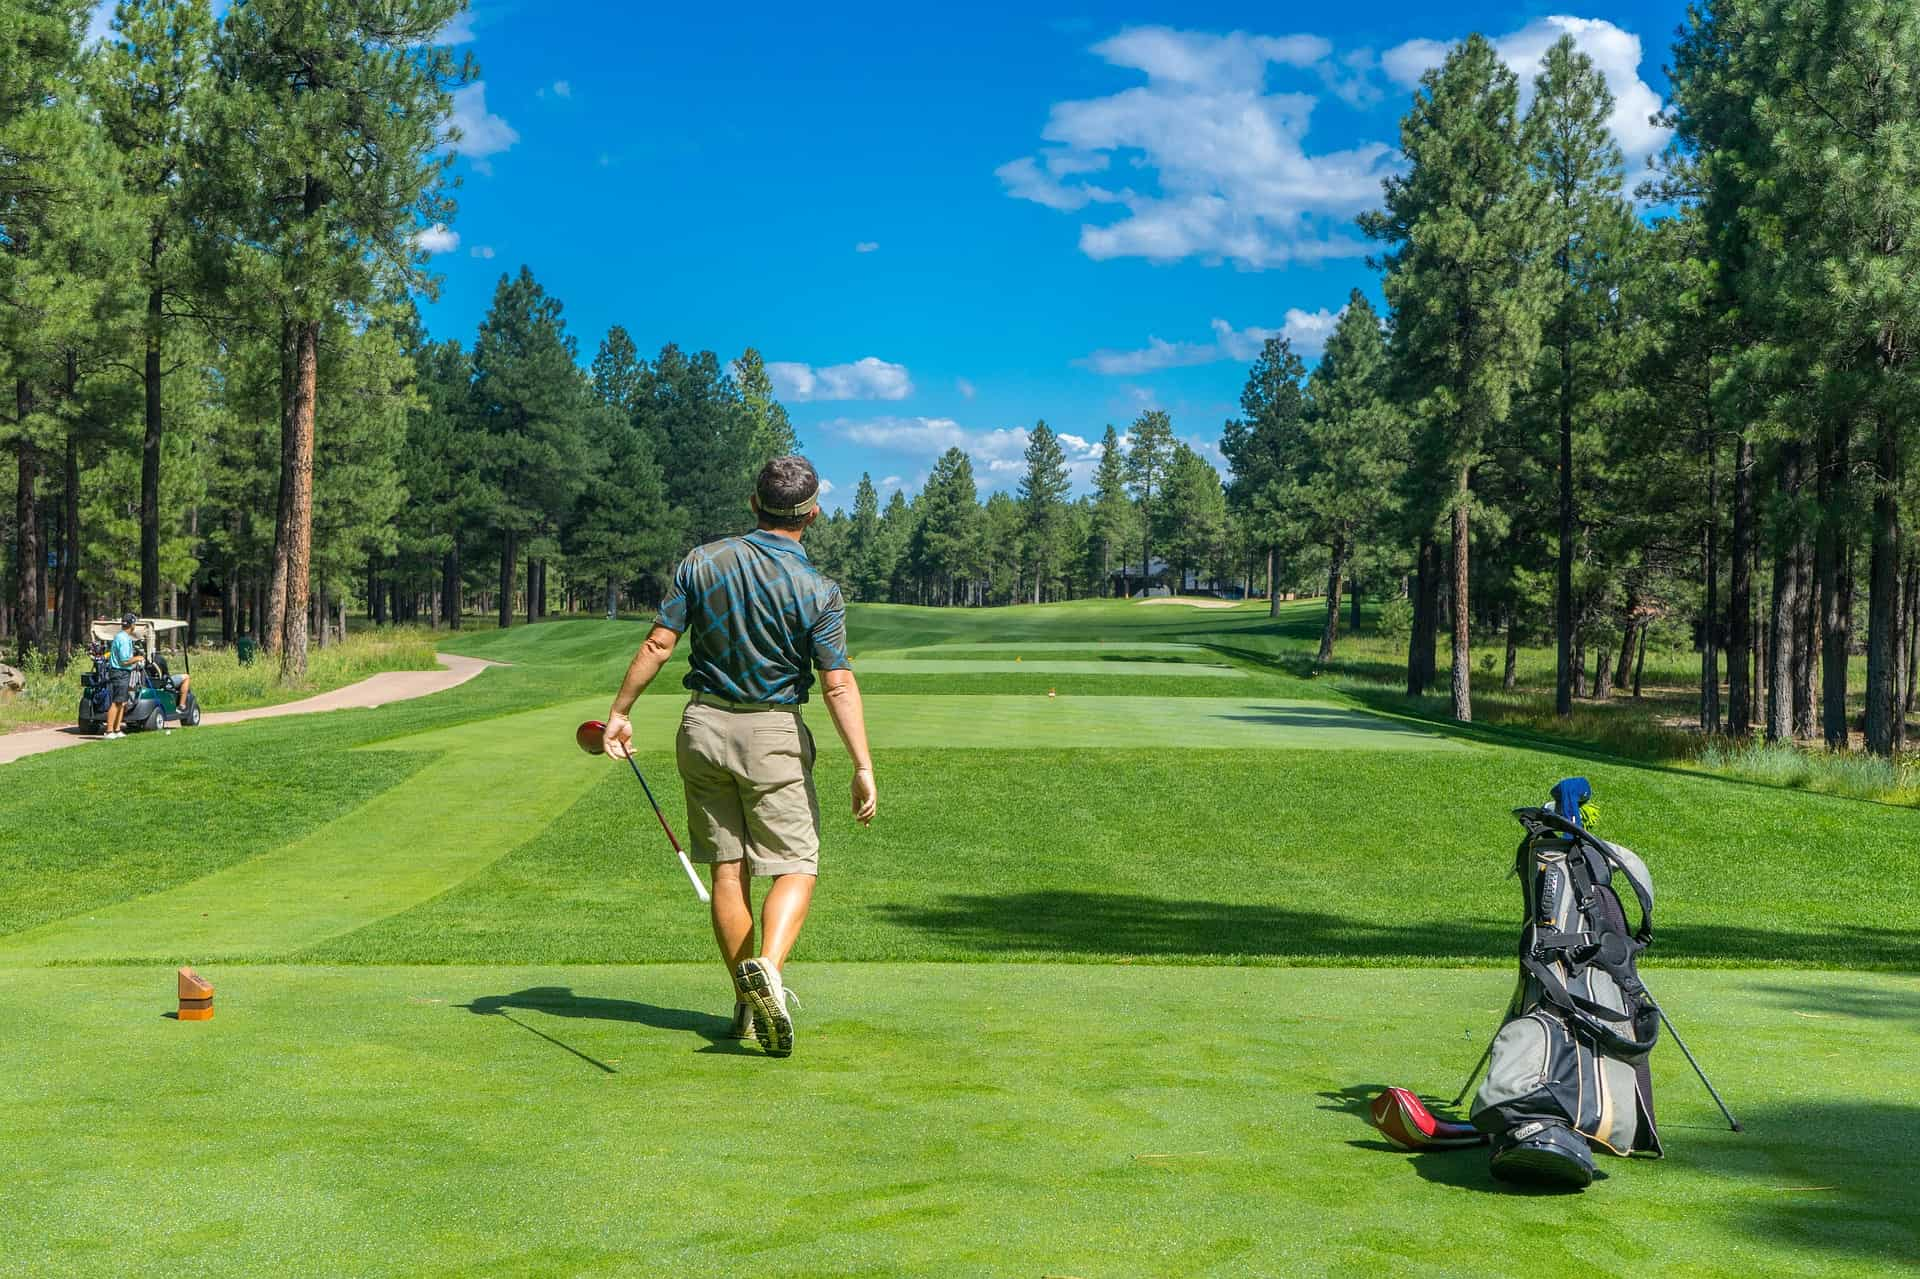 Best Golf Courses in Canada for Retirees